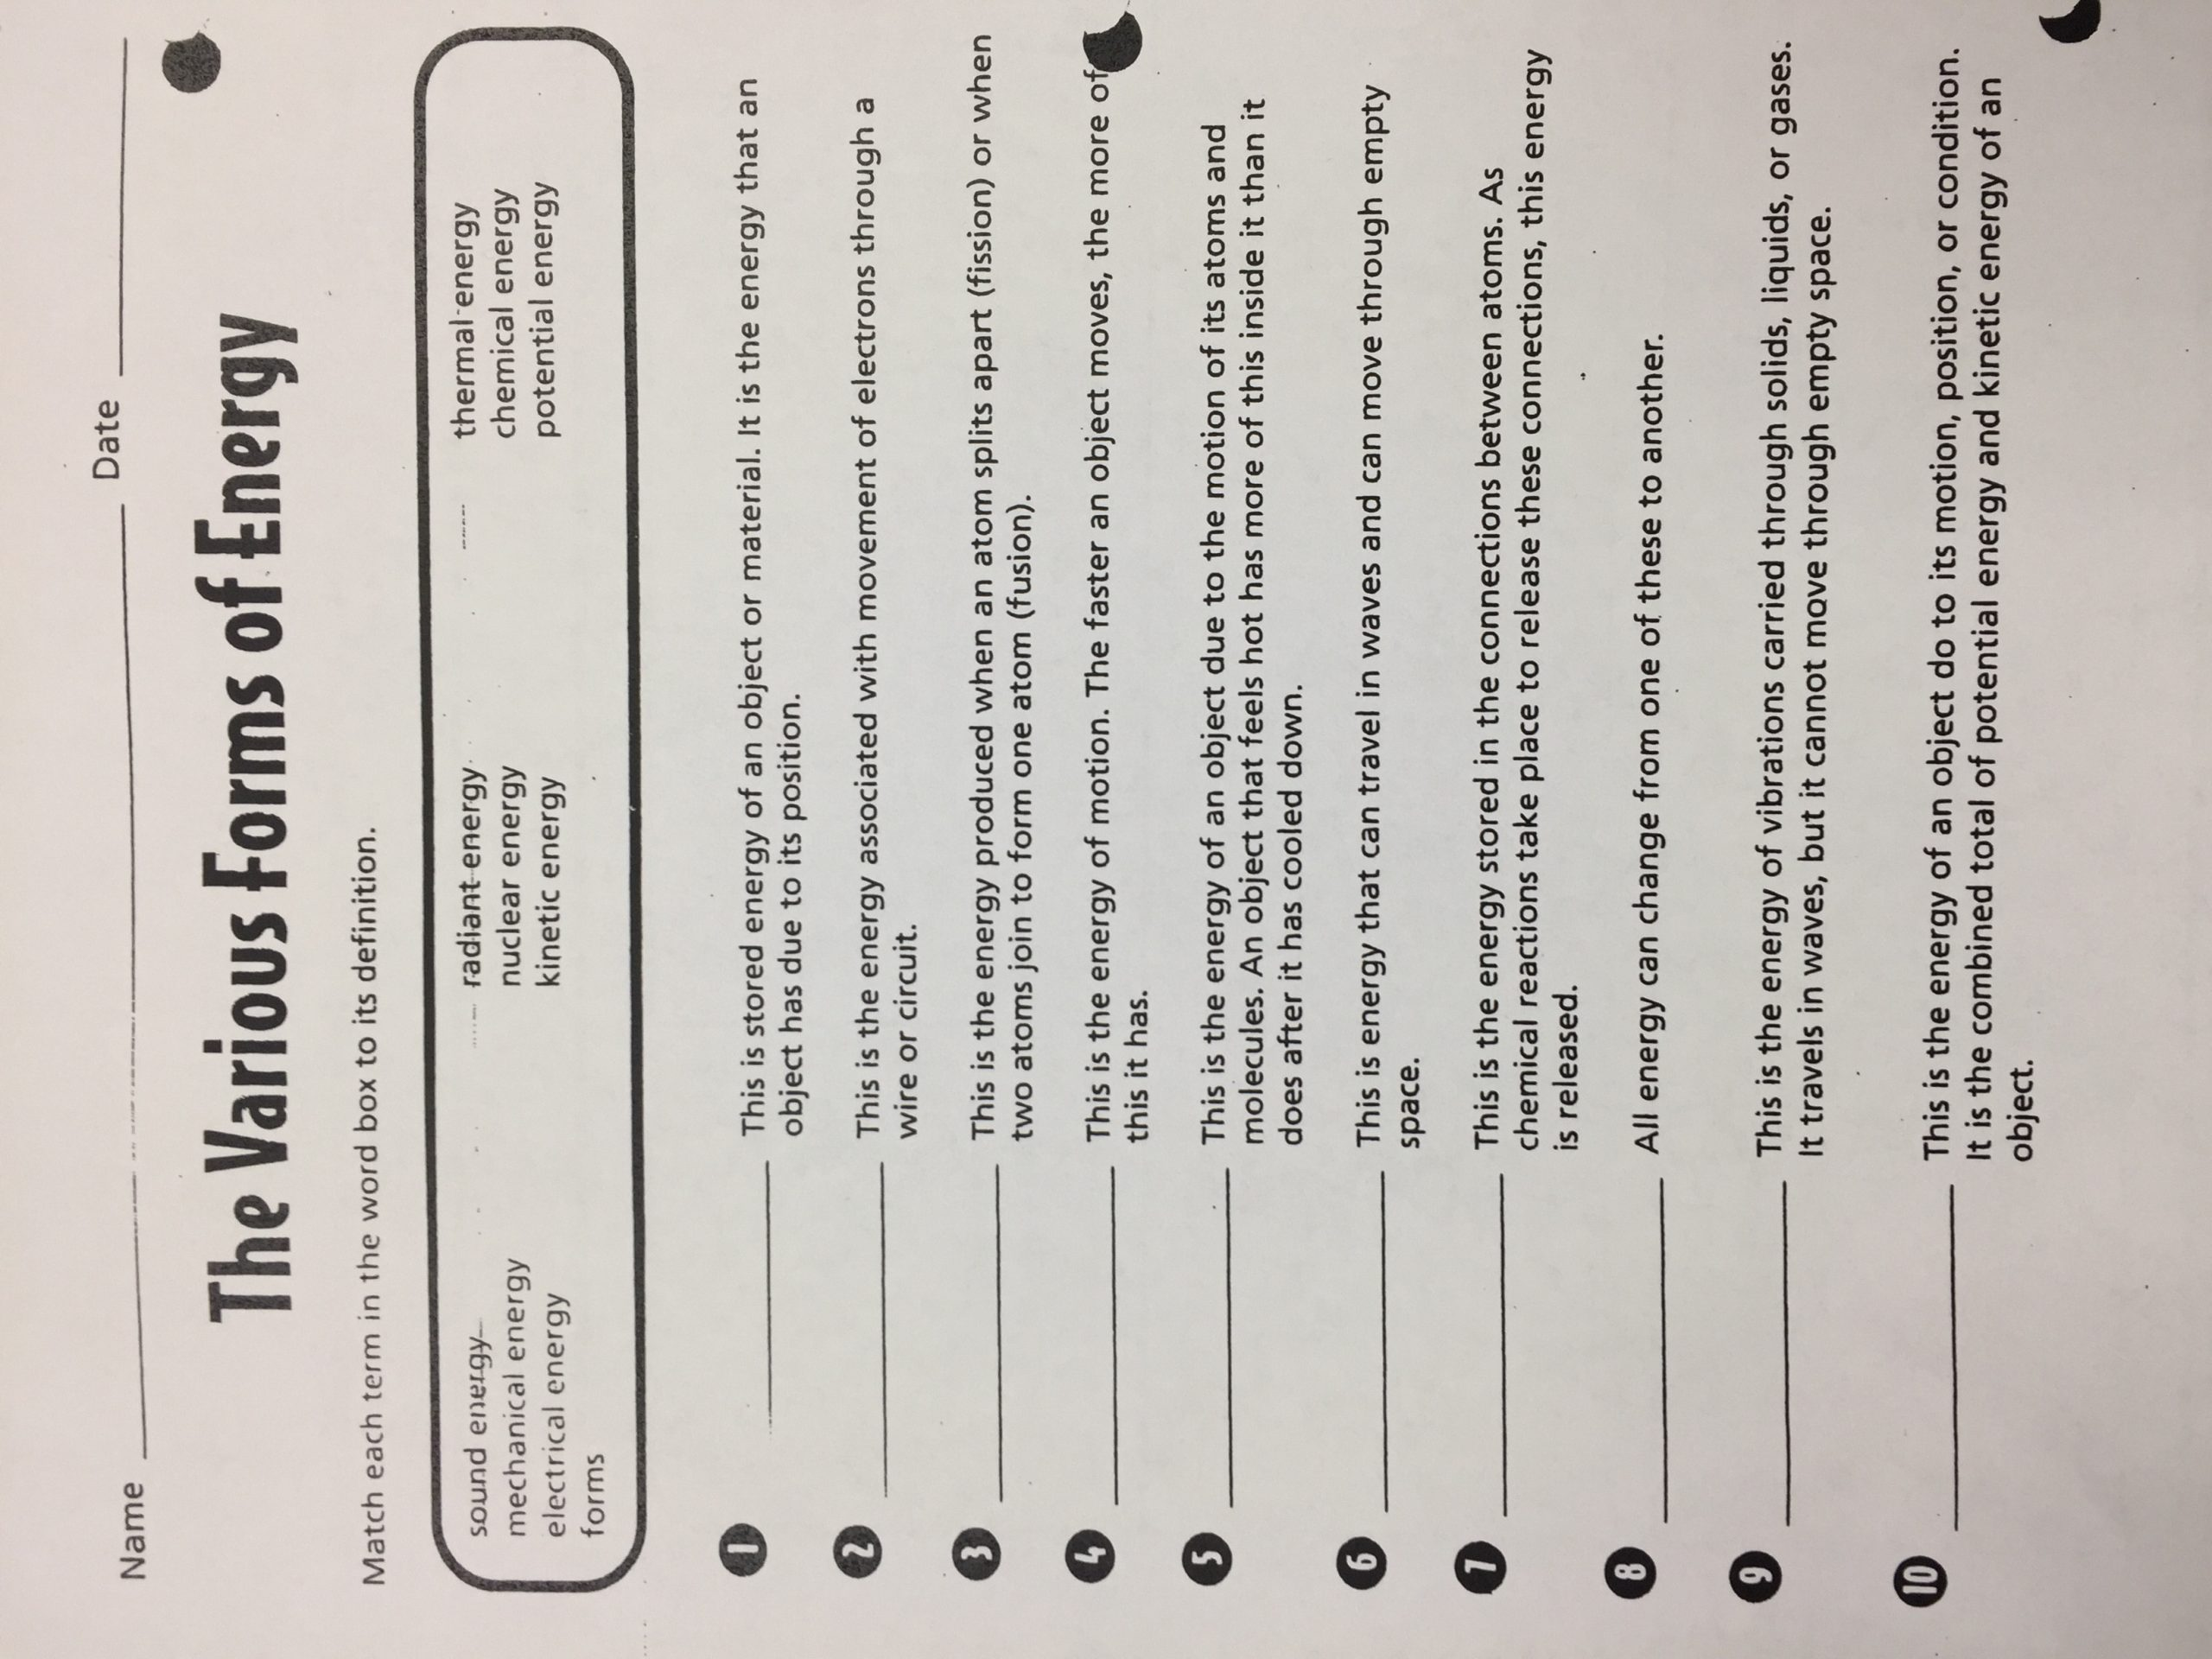 Forms Of Energy Worksheet Answers Michelle Hufstetler Bainbridge Middle School